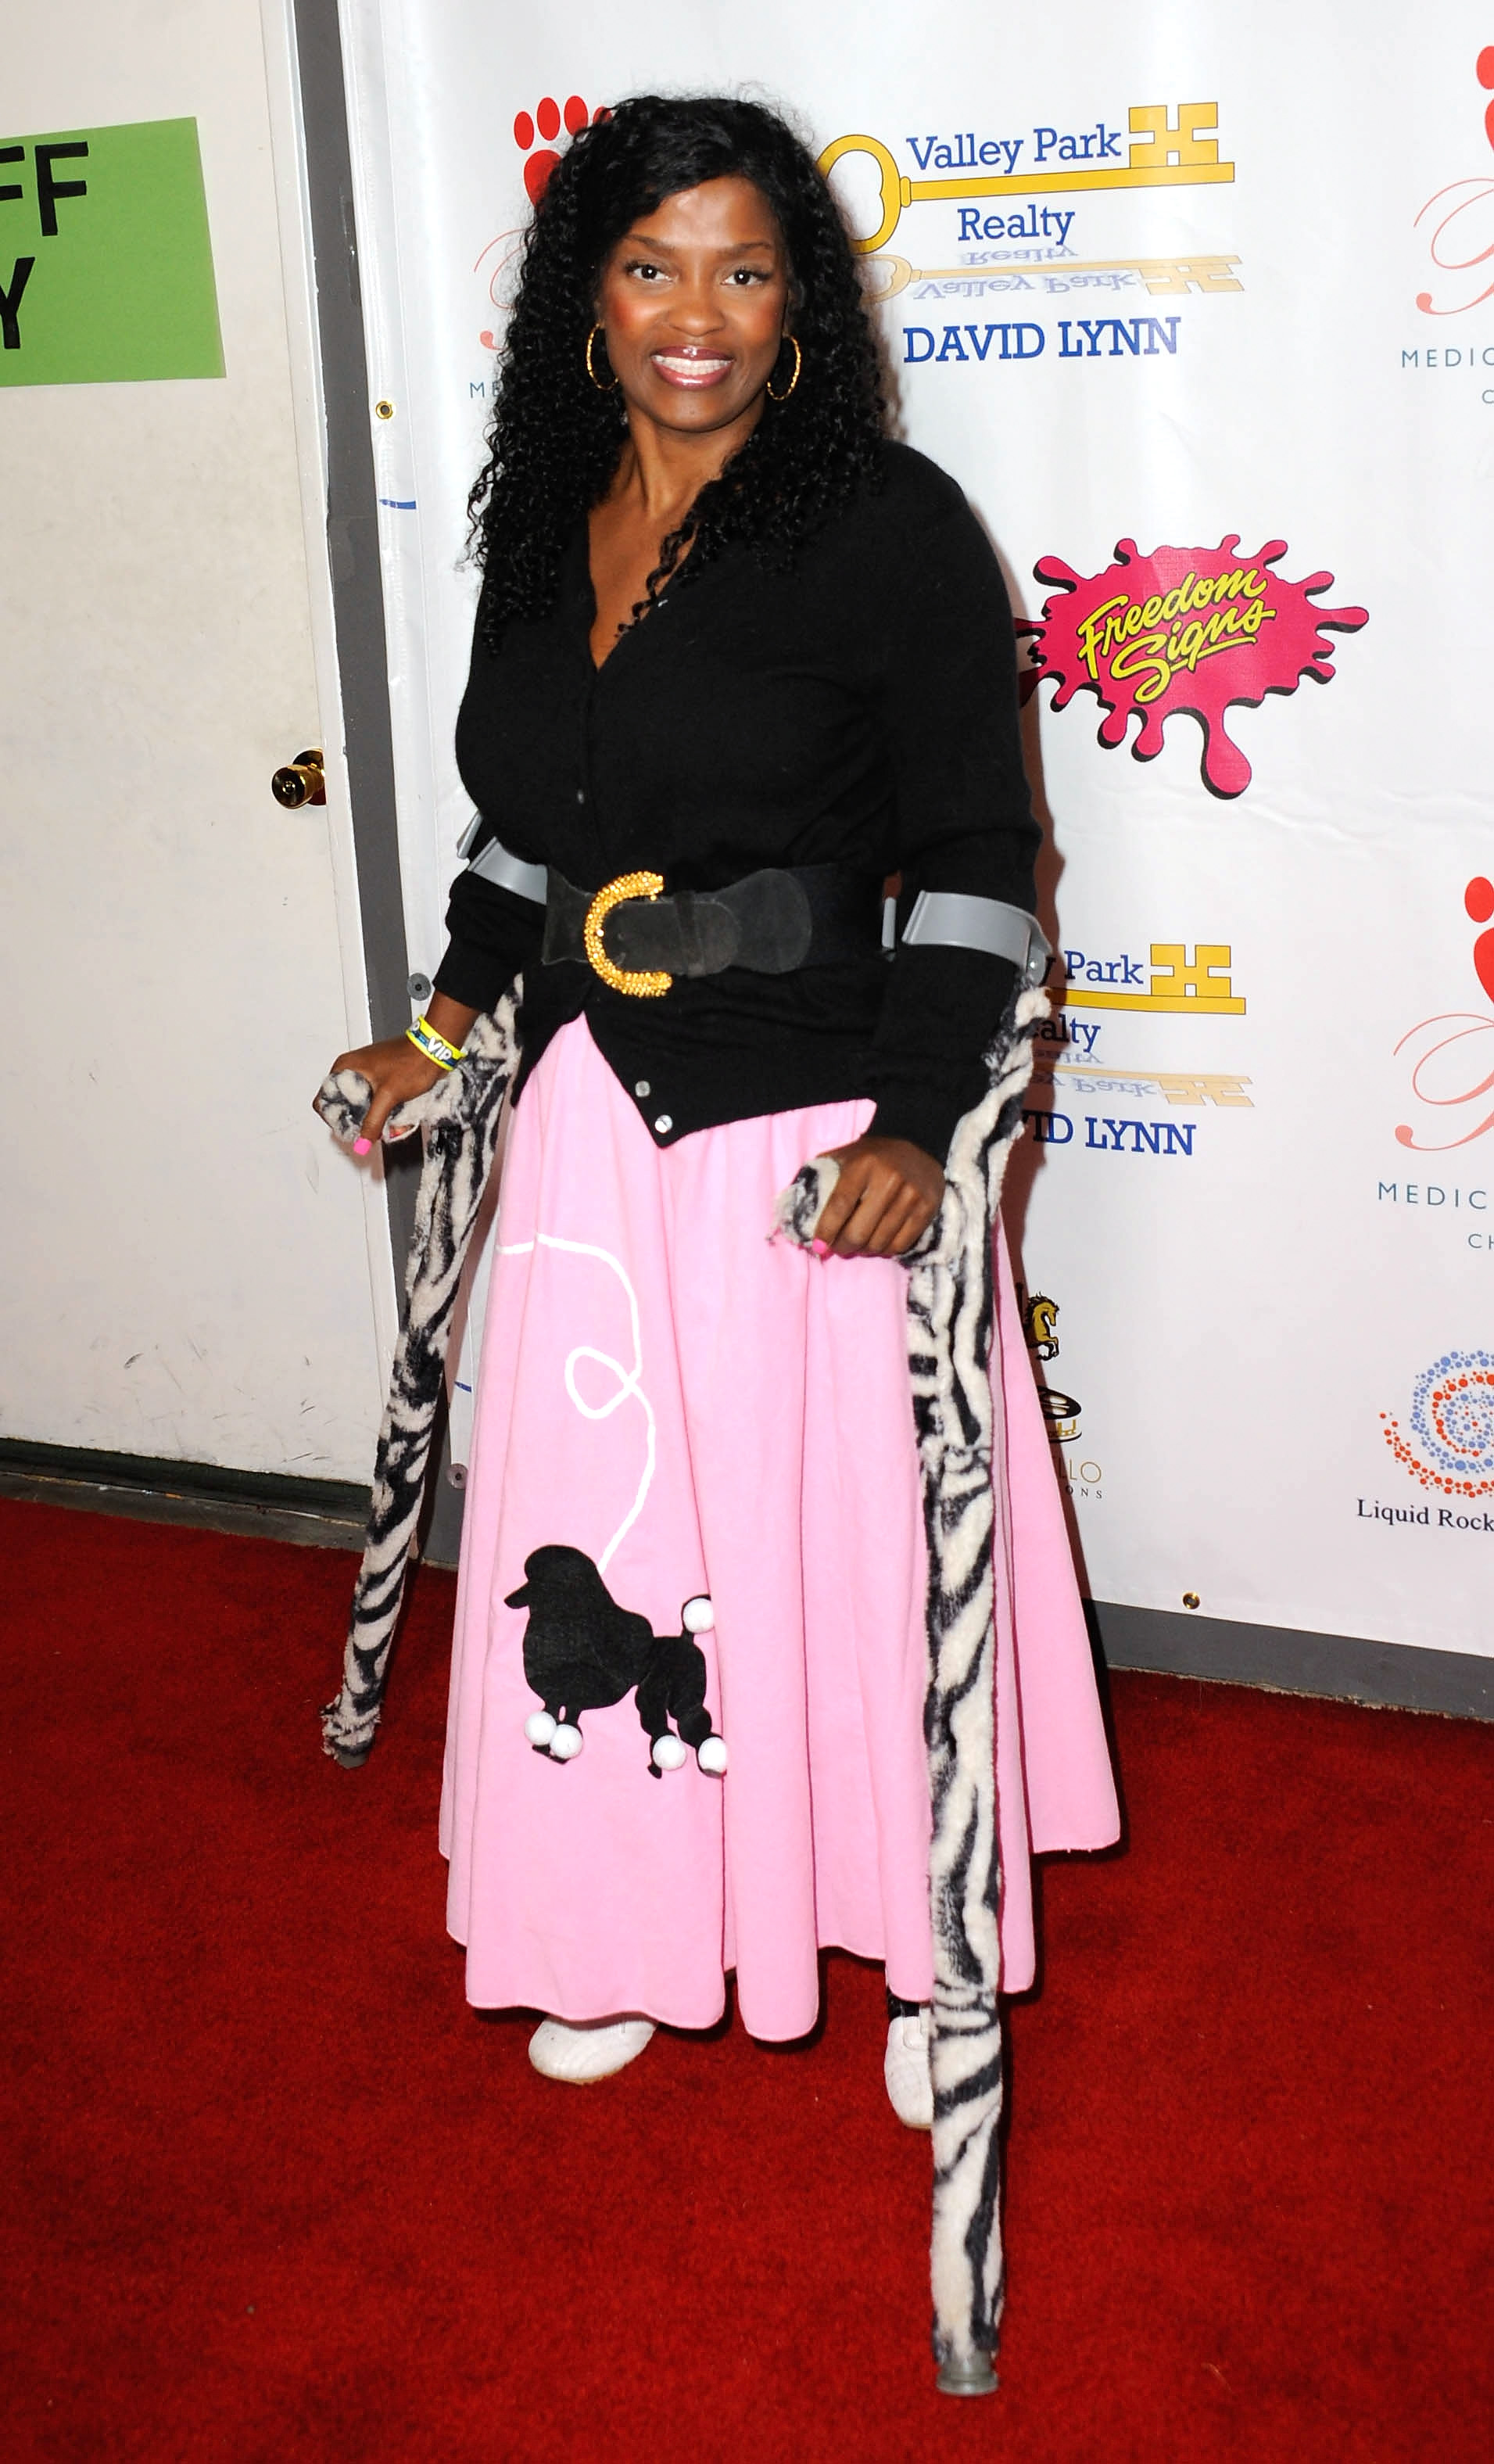 Former 70s Child Star Danielle Spencer Diagnosed With Breast